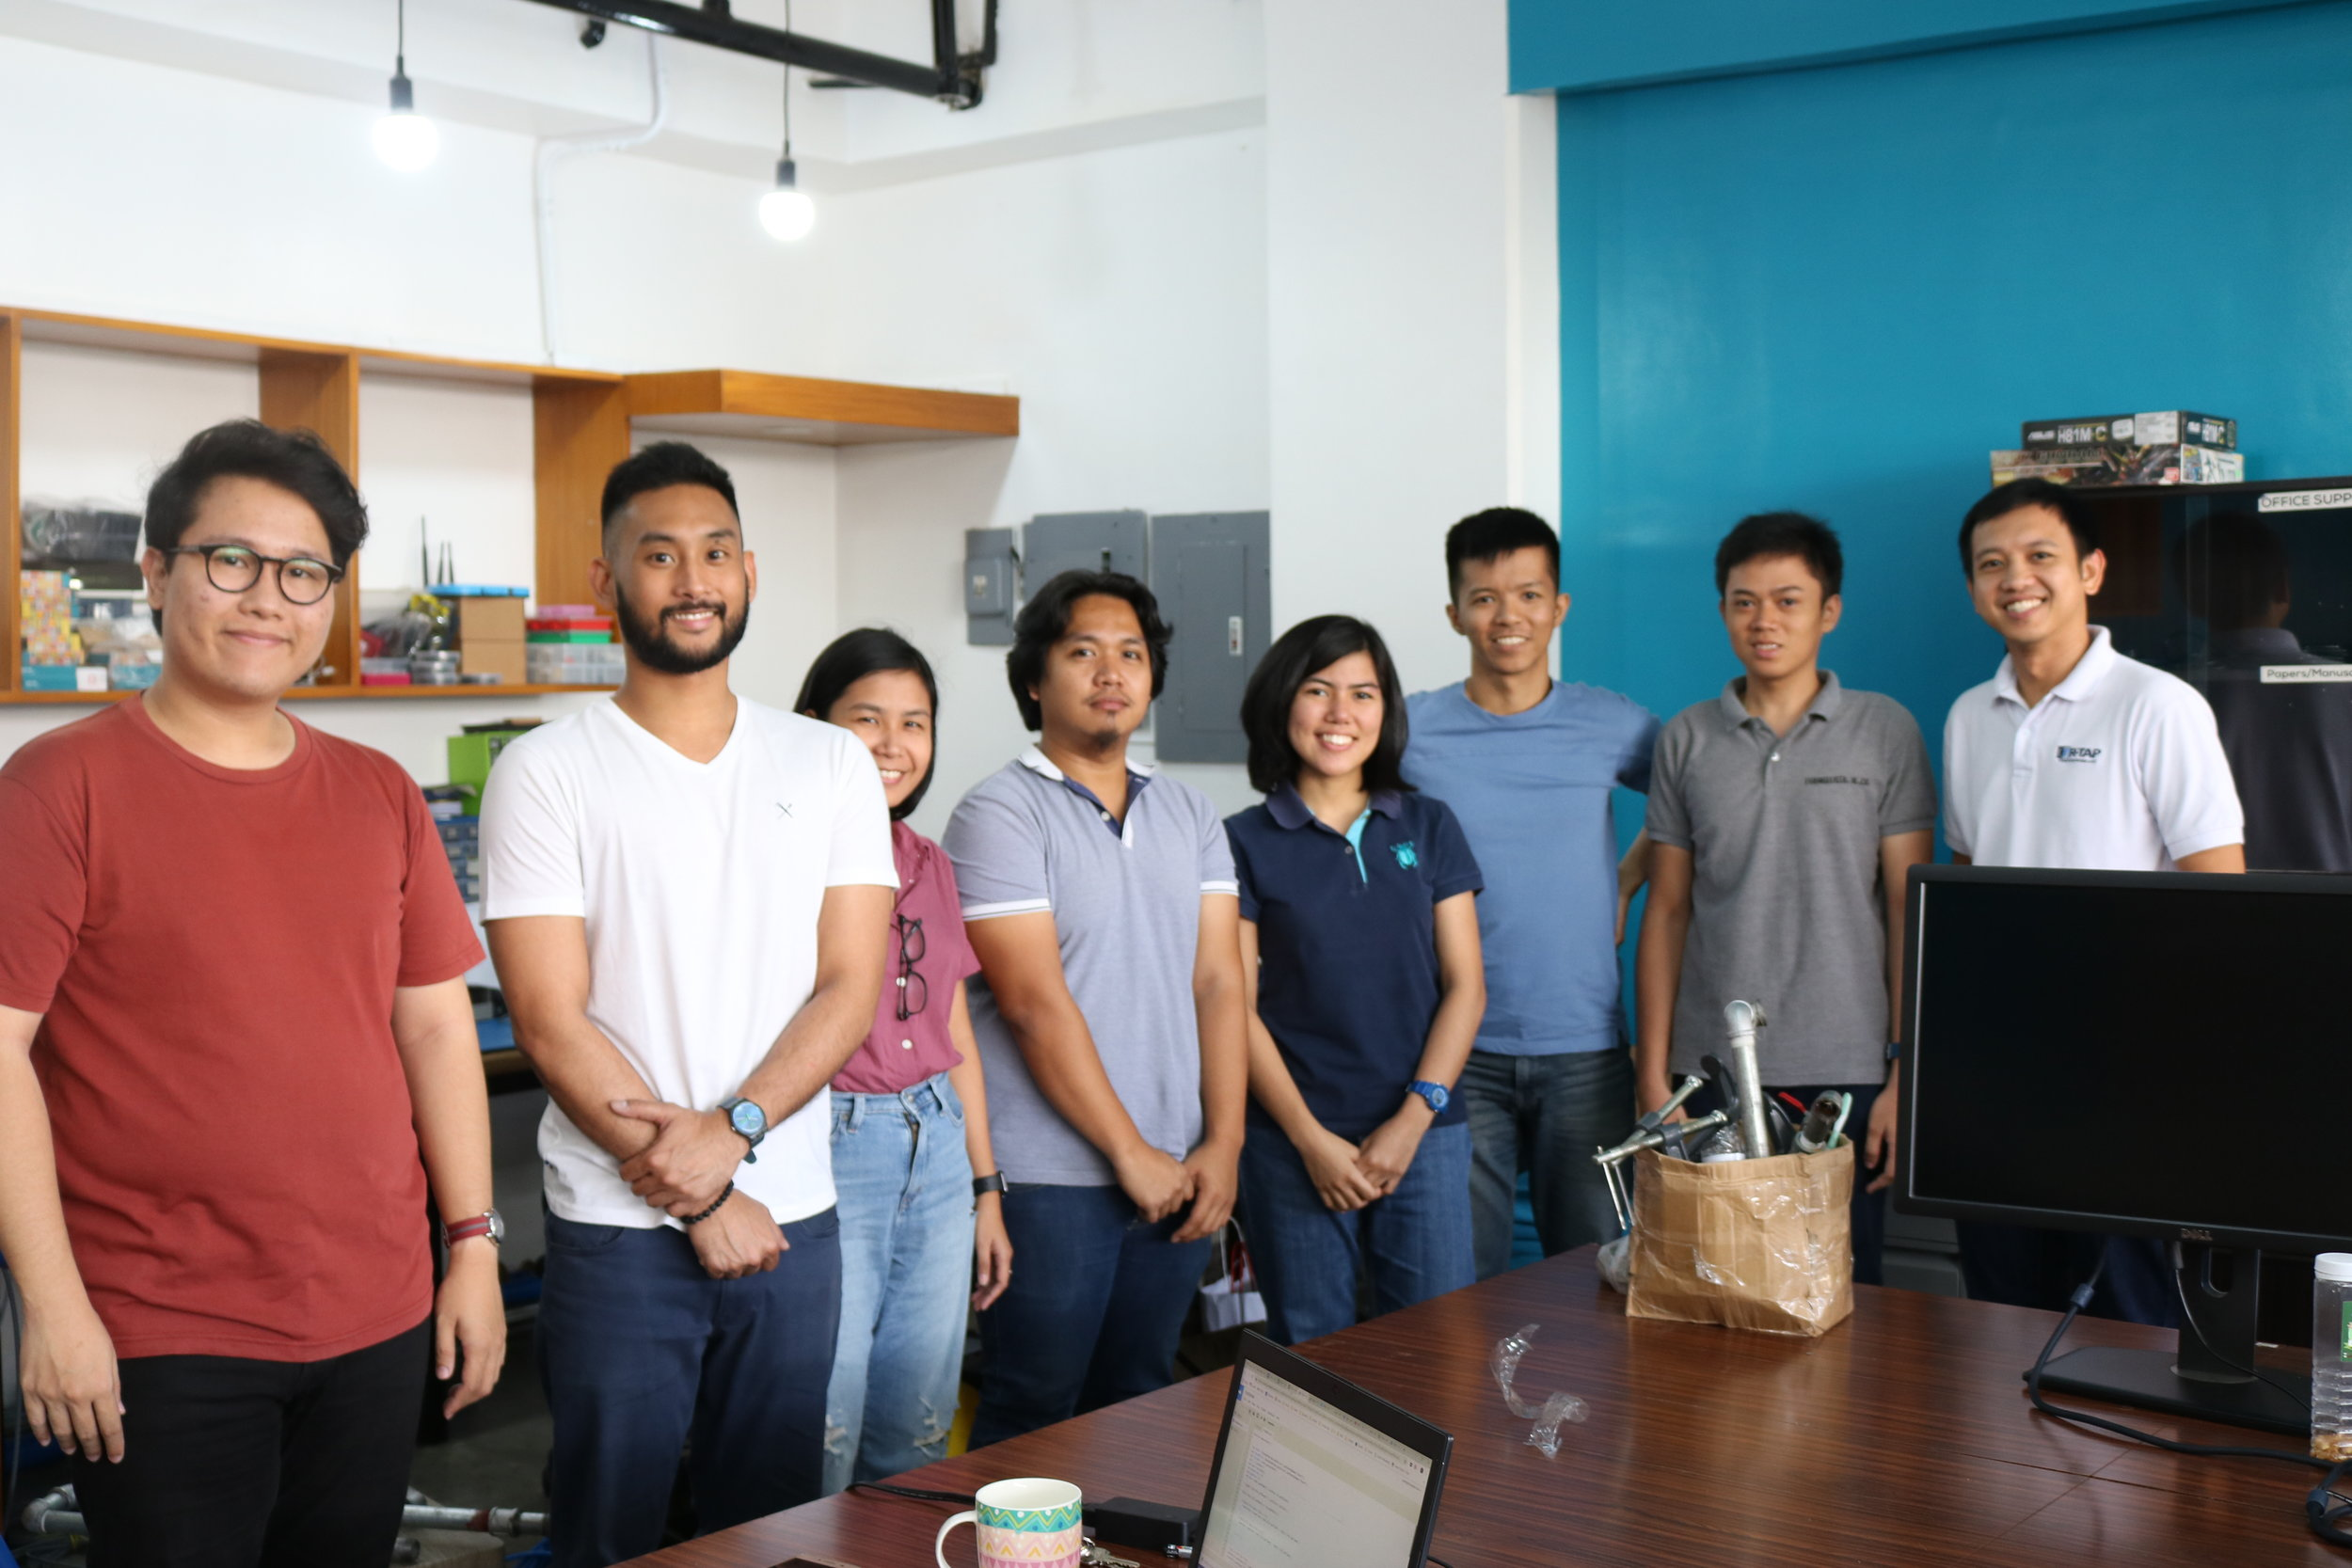 The ISIP team with Hiraya Water's founders and core team at their headquarters in Quezon City